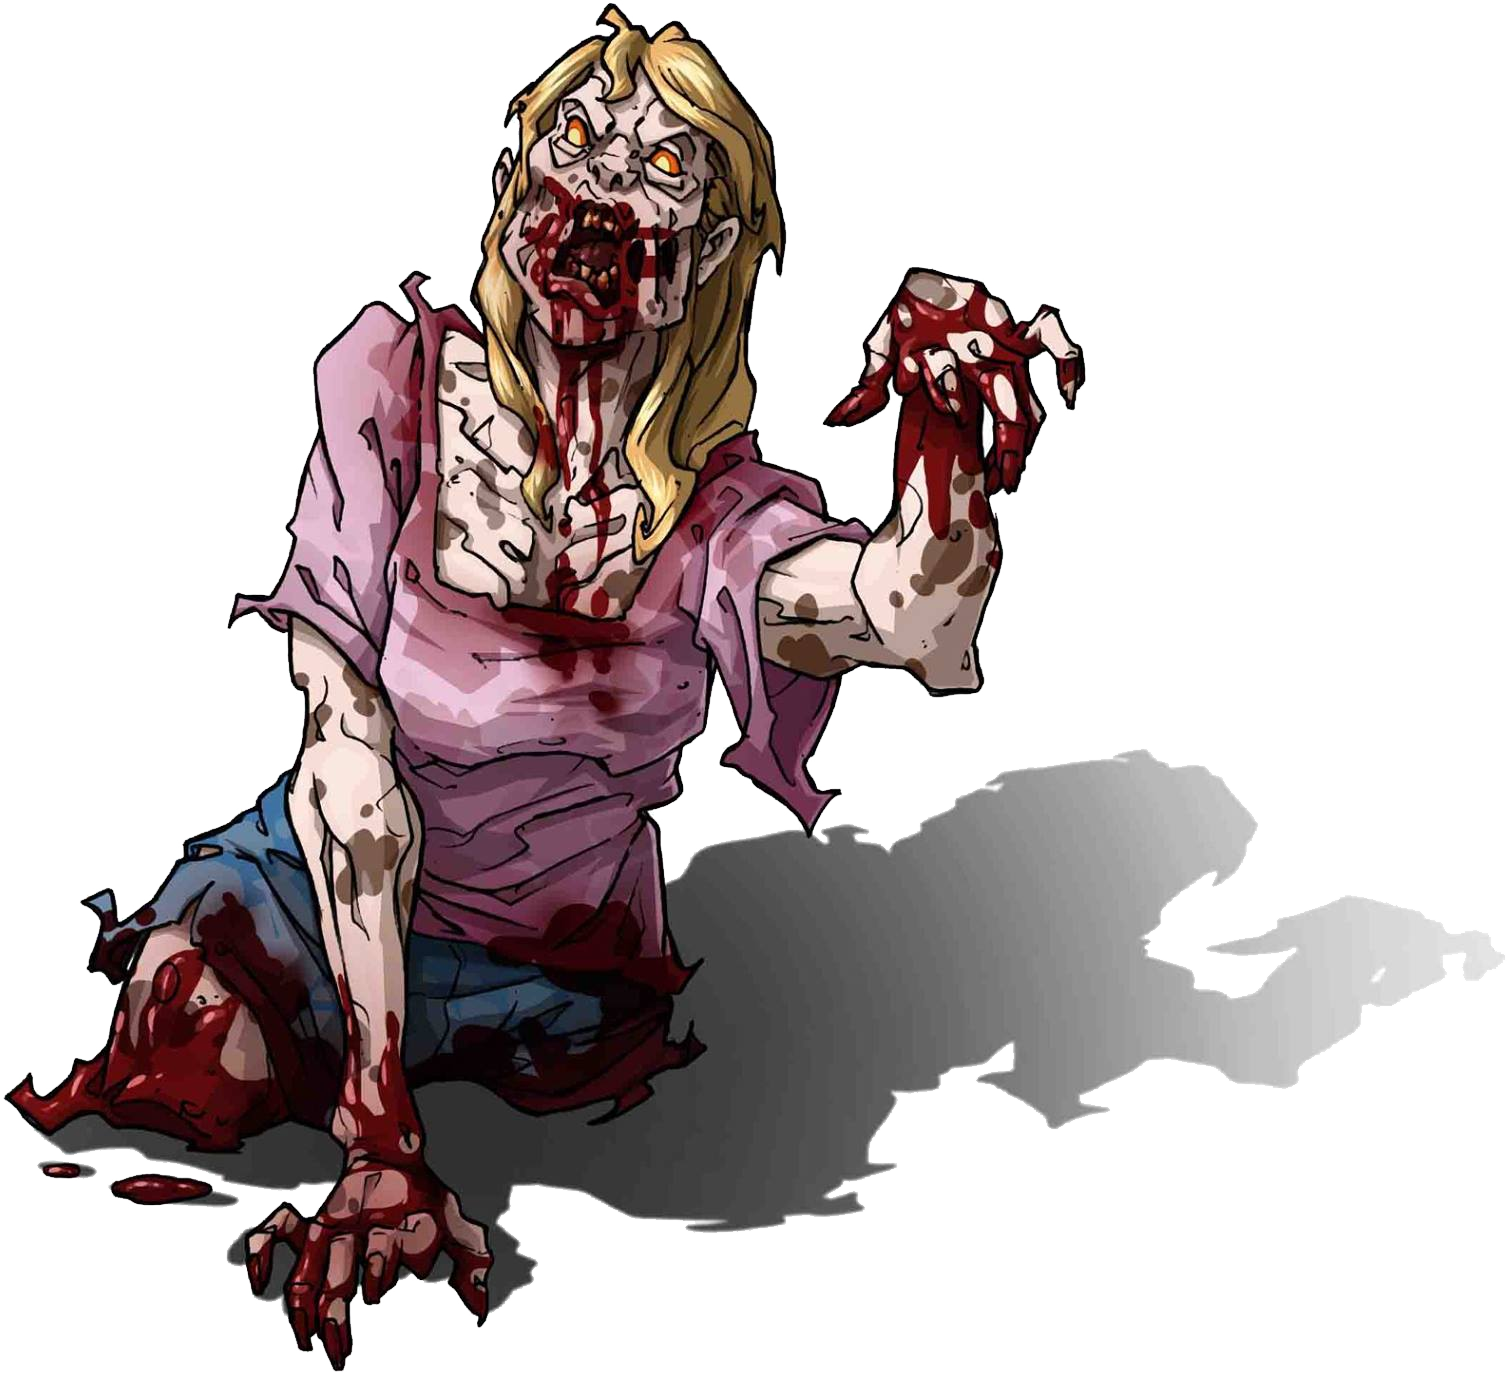 Image skinner crawler zombicide. Crawling zombie png png